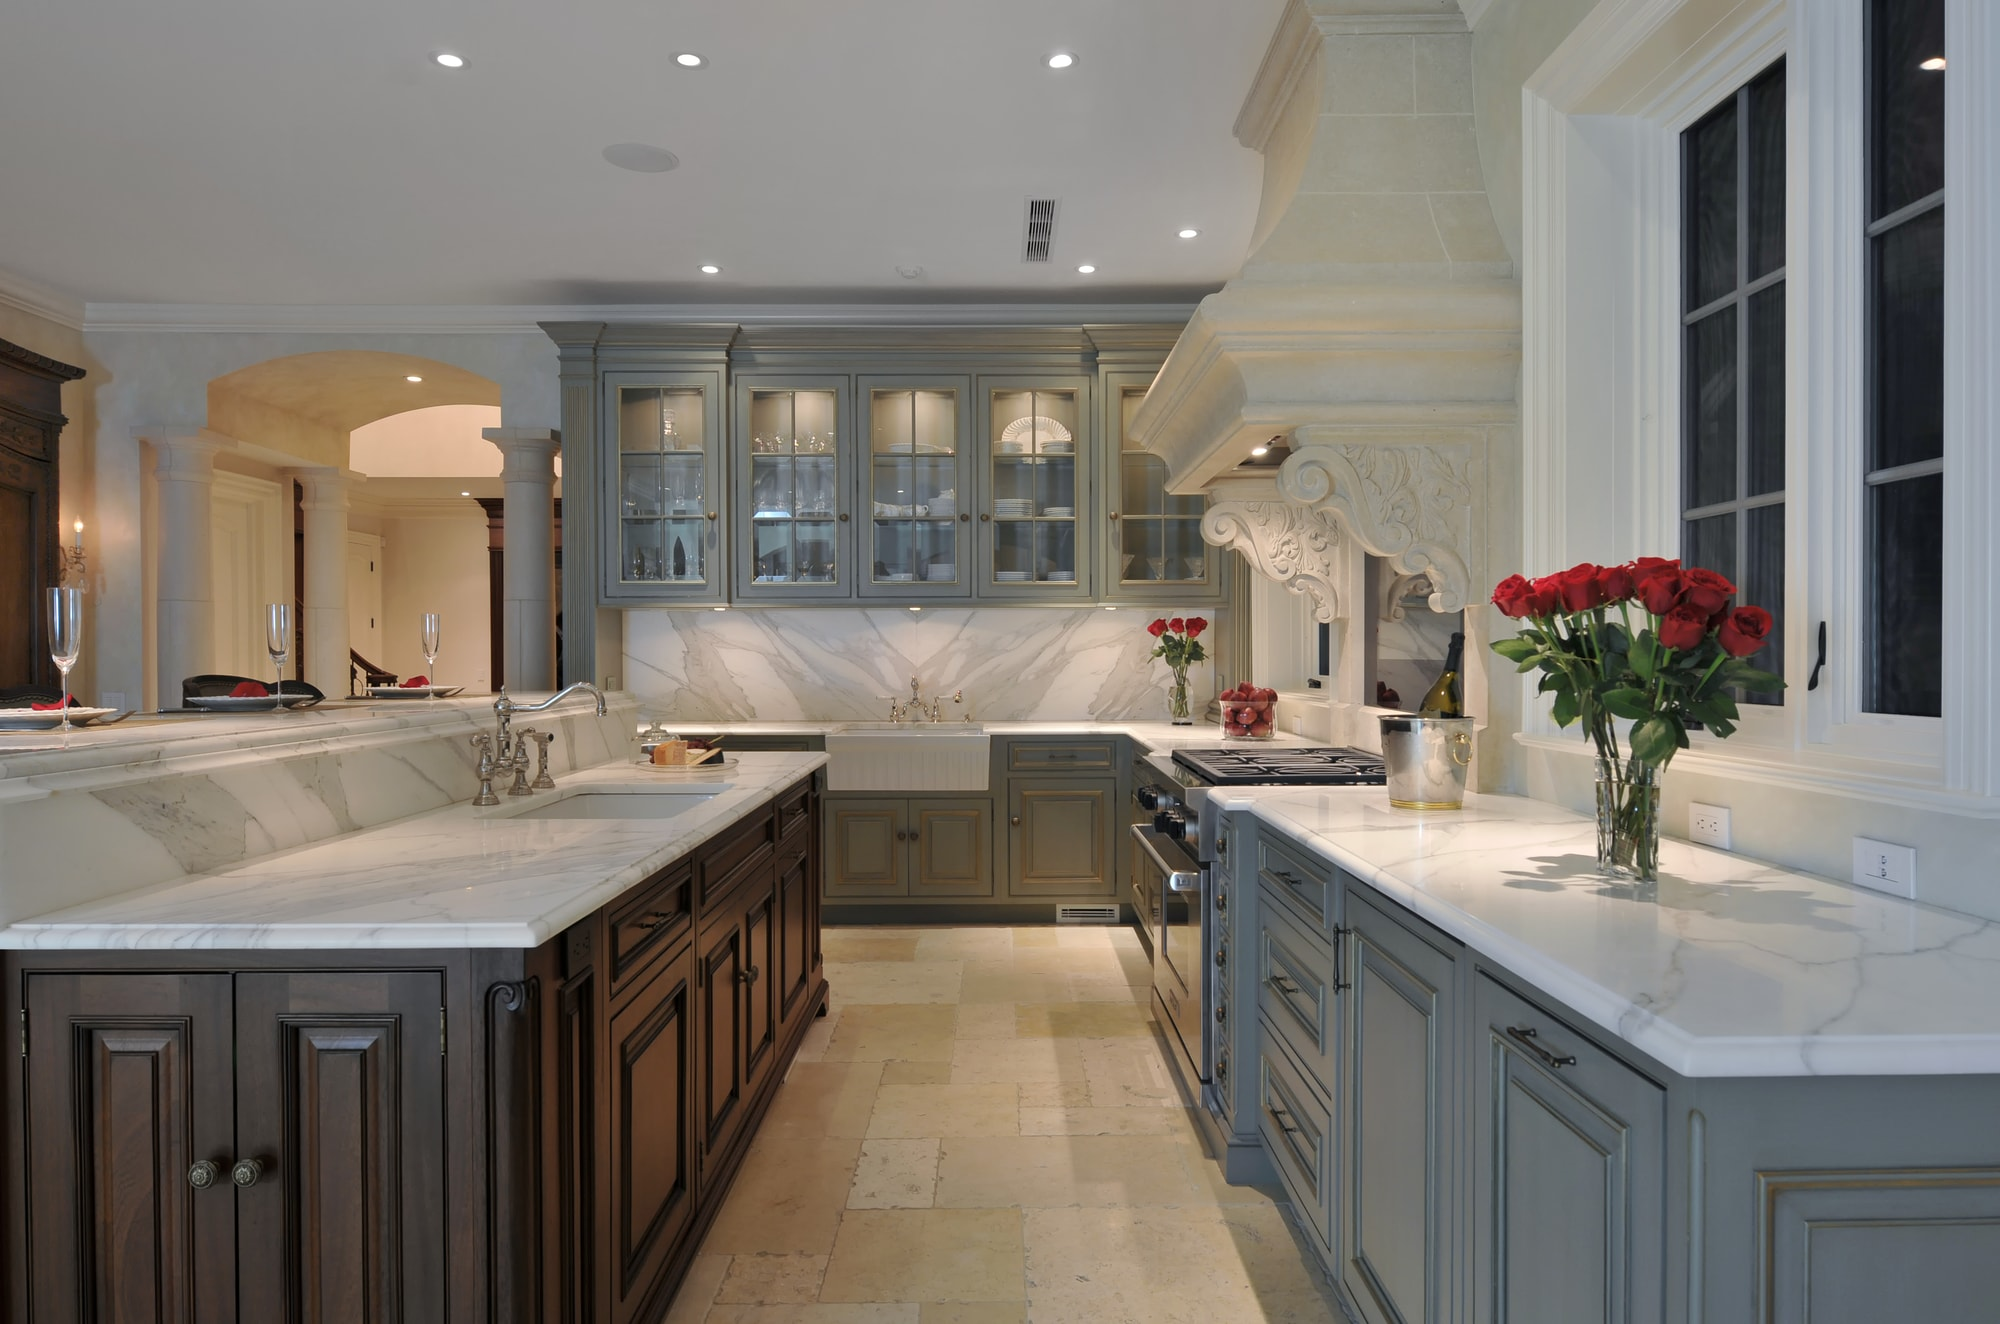 Traditional style kitchen with wooden drawers